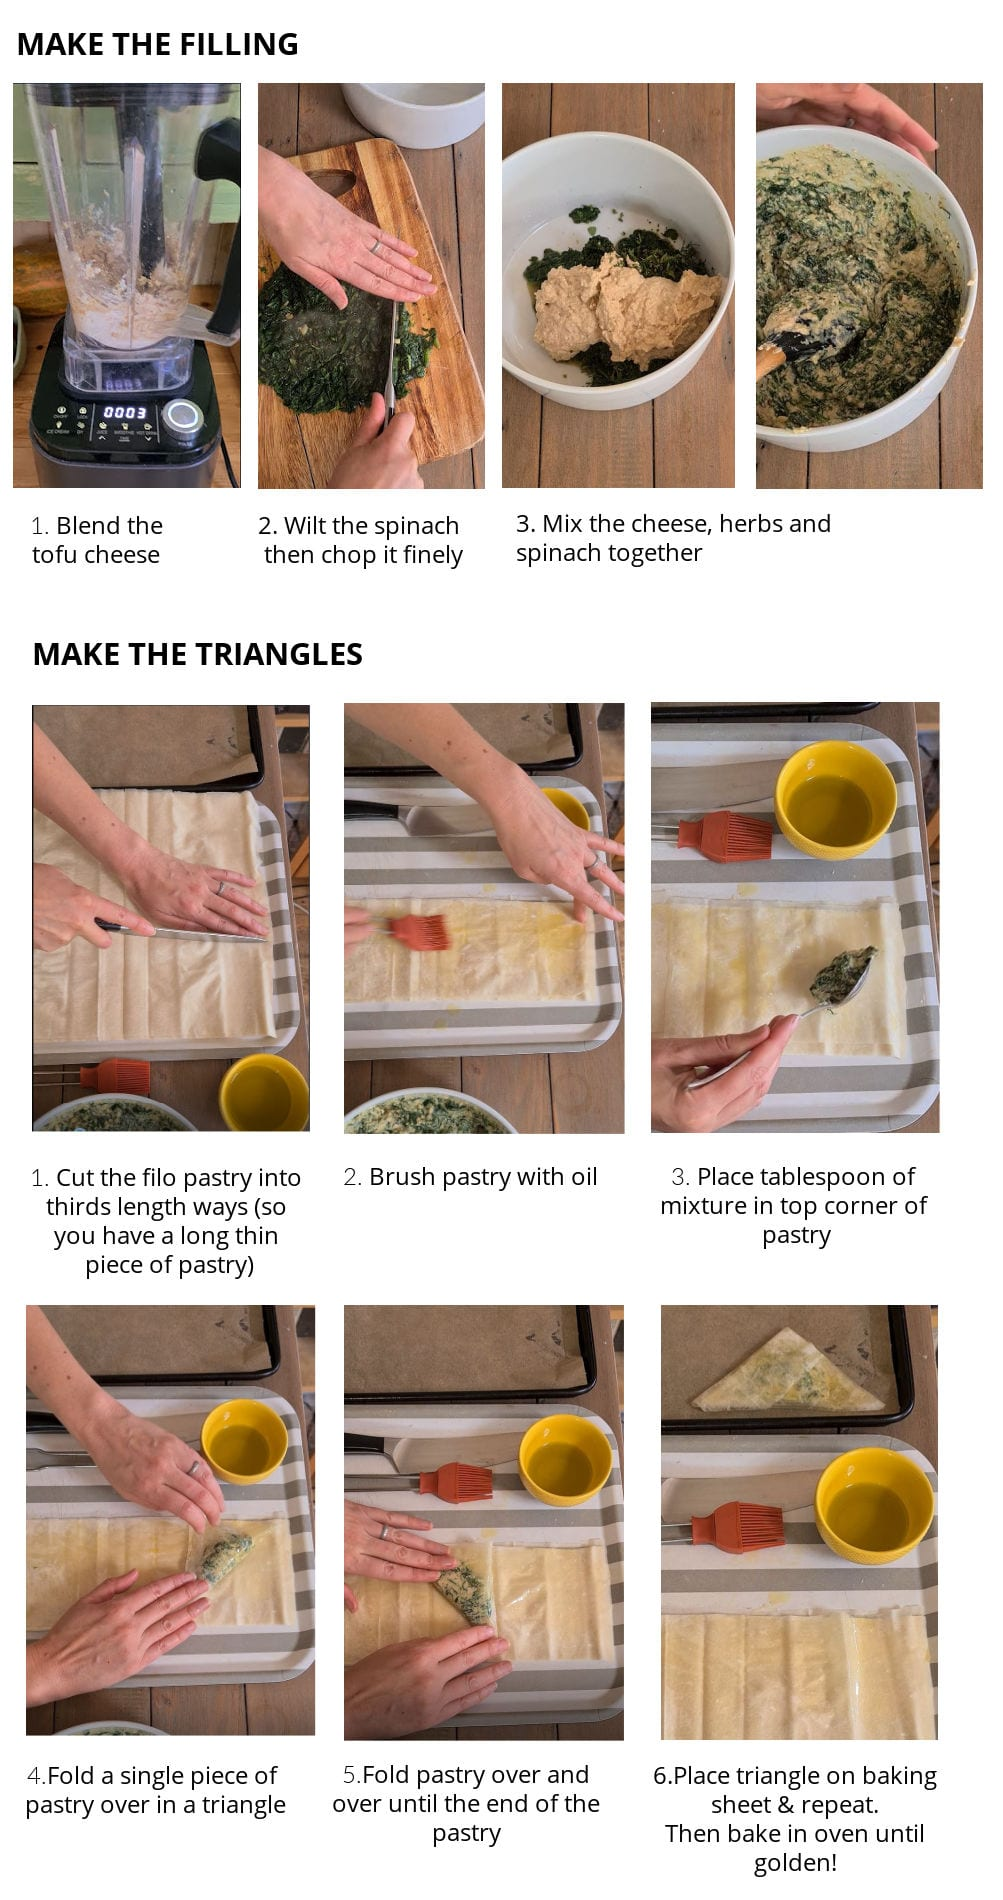 Step by step picture guide how to make the cheezy spinach triangles.